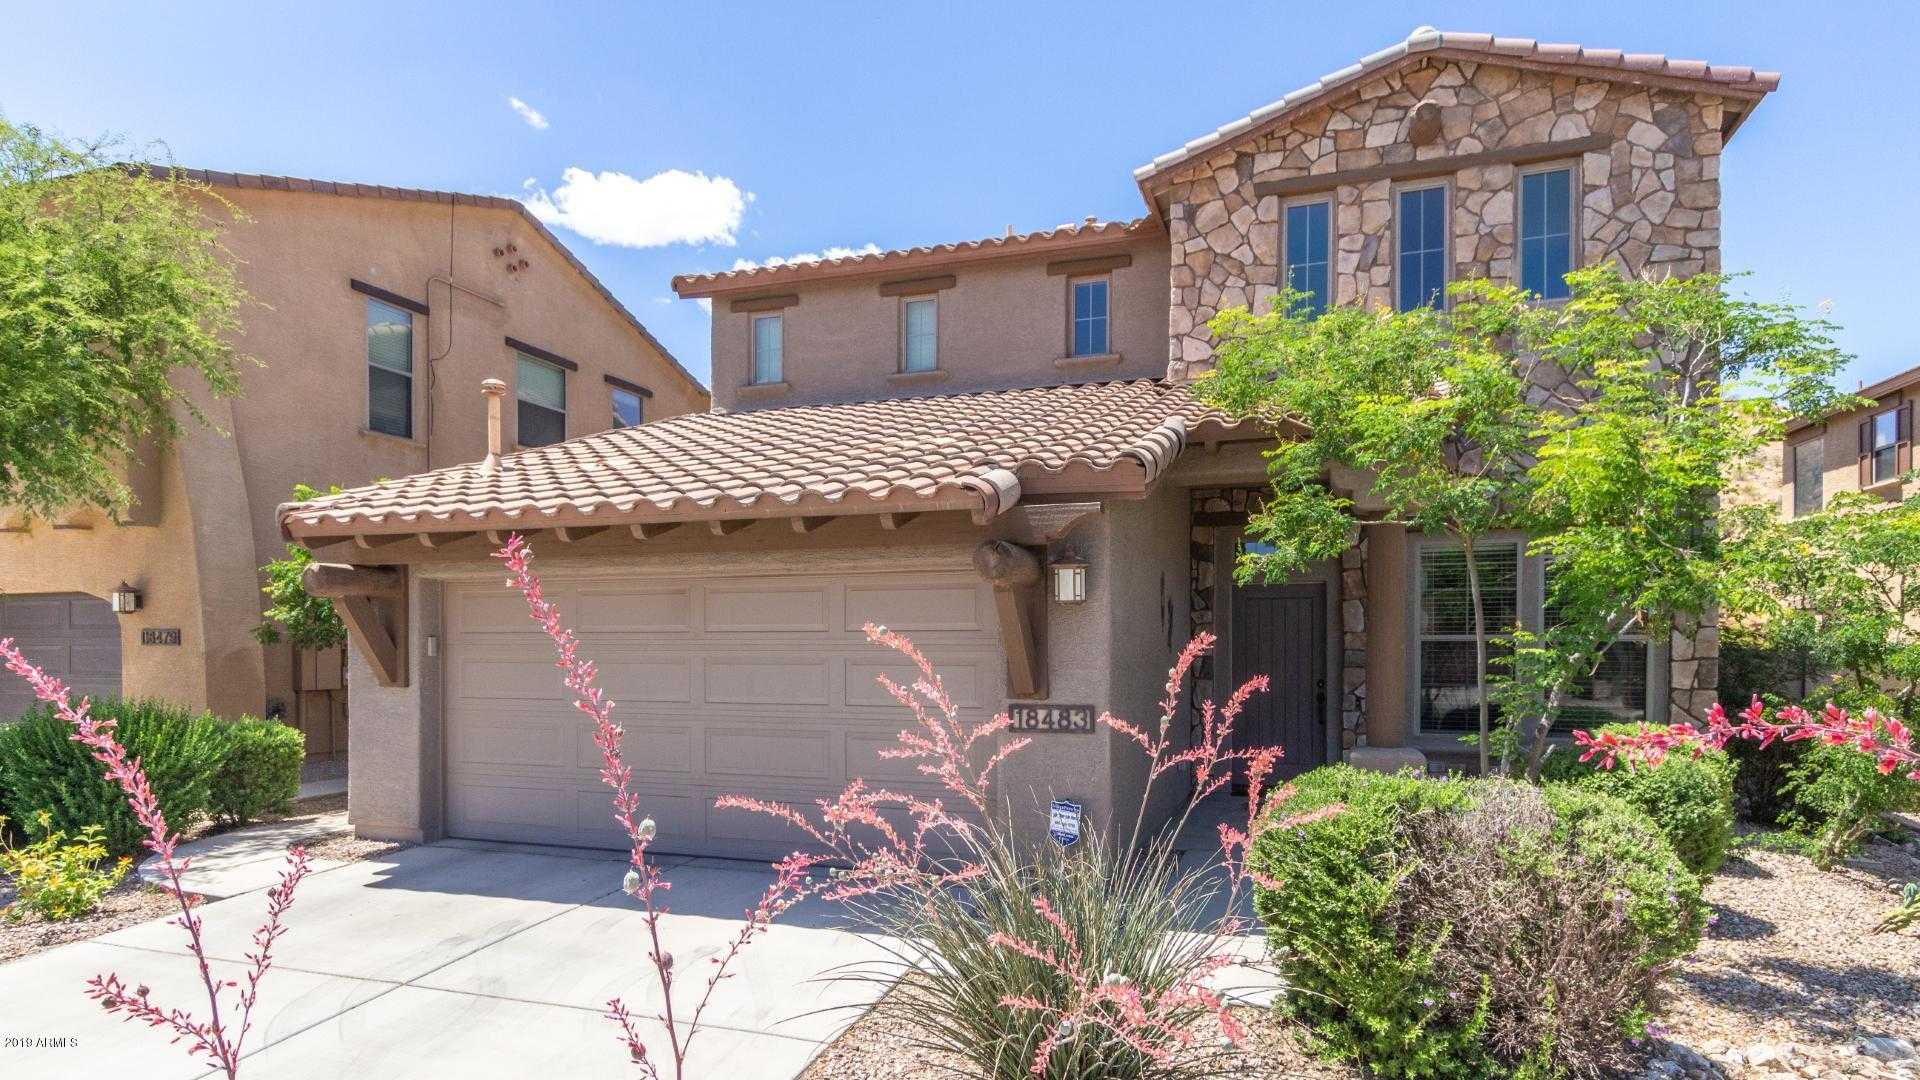 Homes for Sale in Goodyear - Paula and Susan Fix